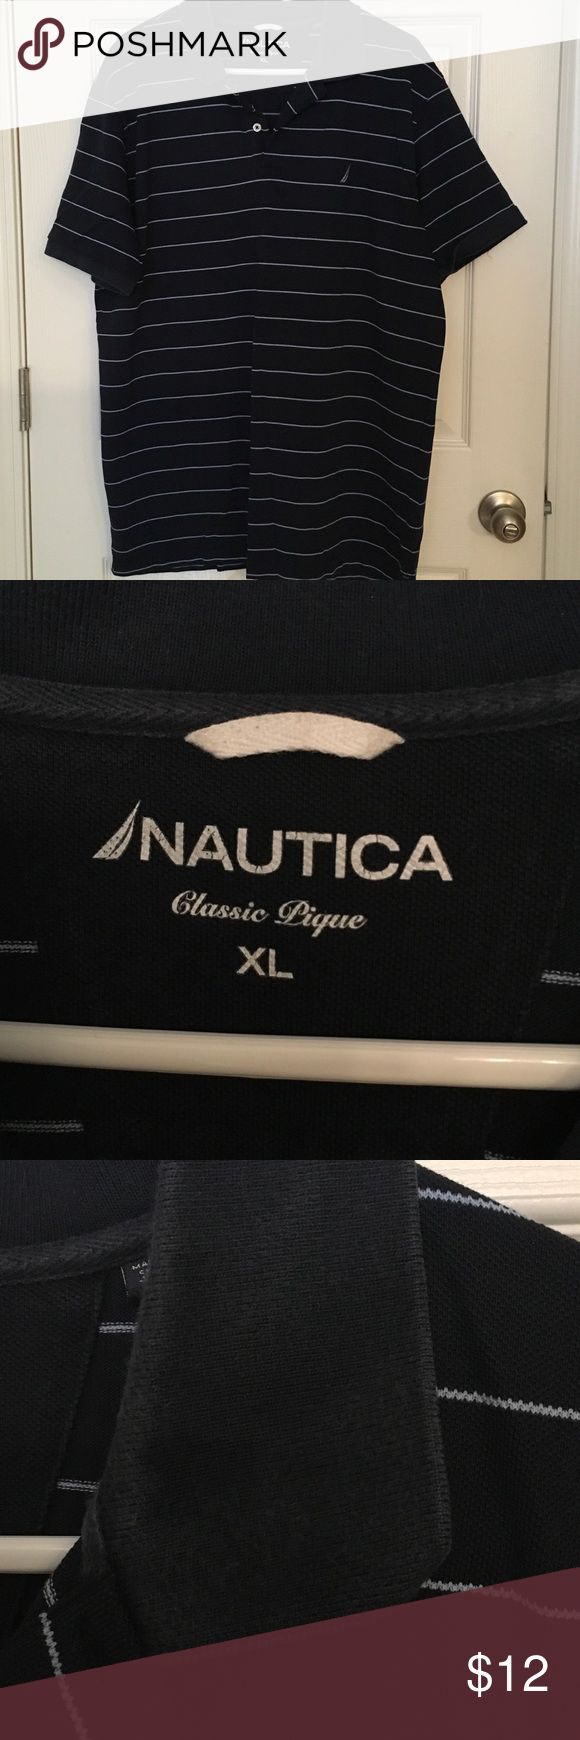 Nautica polo - SALE 4 GUC, slight fading and stain as noted Nautica Shirts Polos